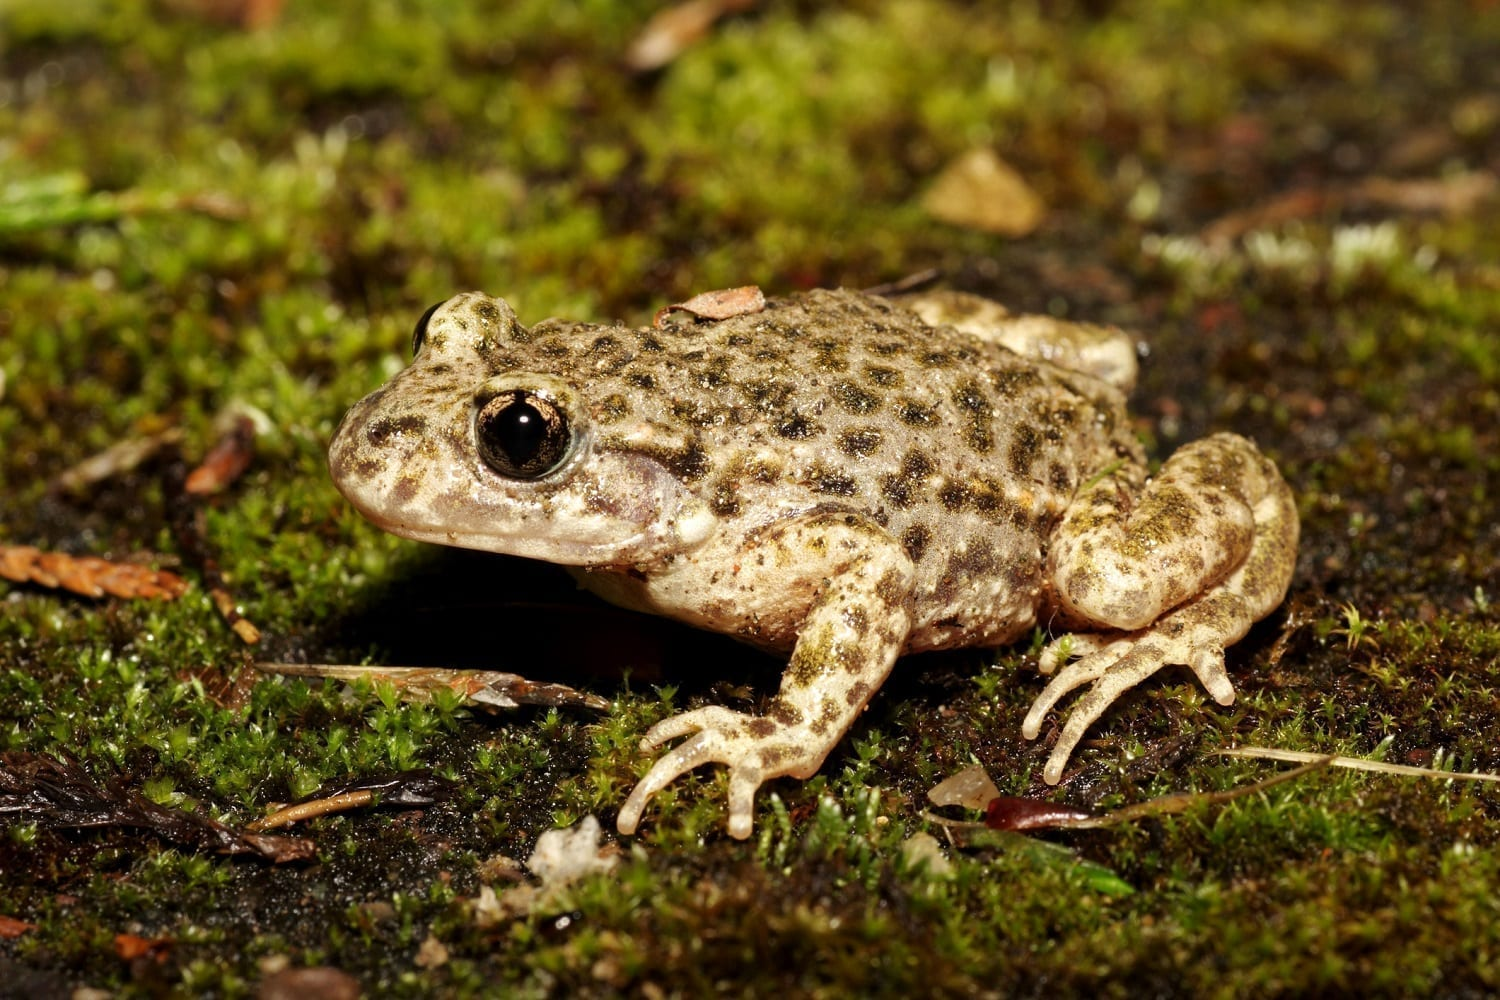 Midwife Toad on mossy ground: ID 44681190 © Wildlifesnapper | Dreamstime.com